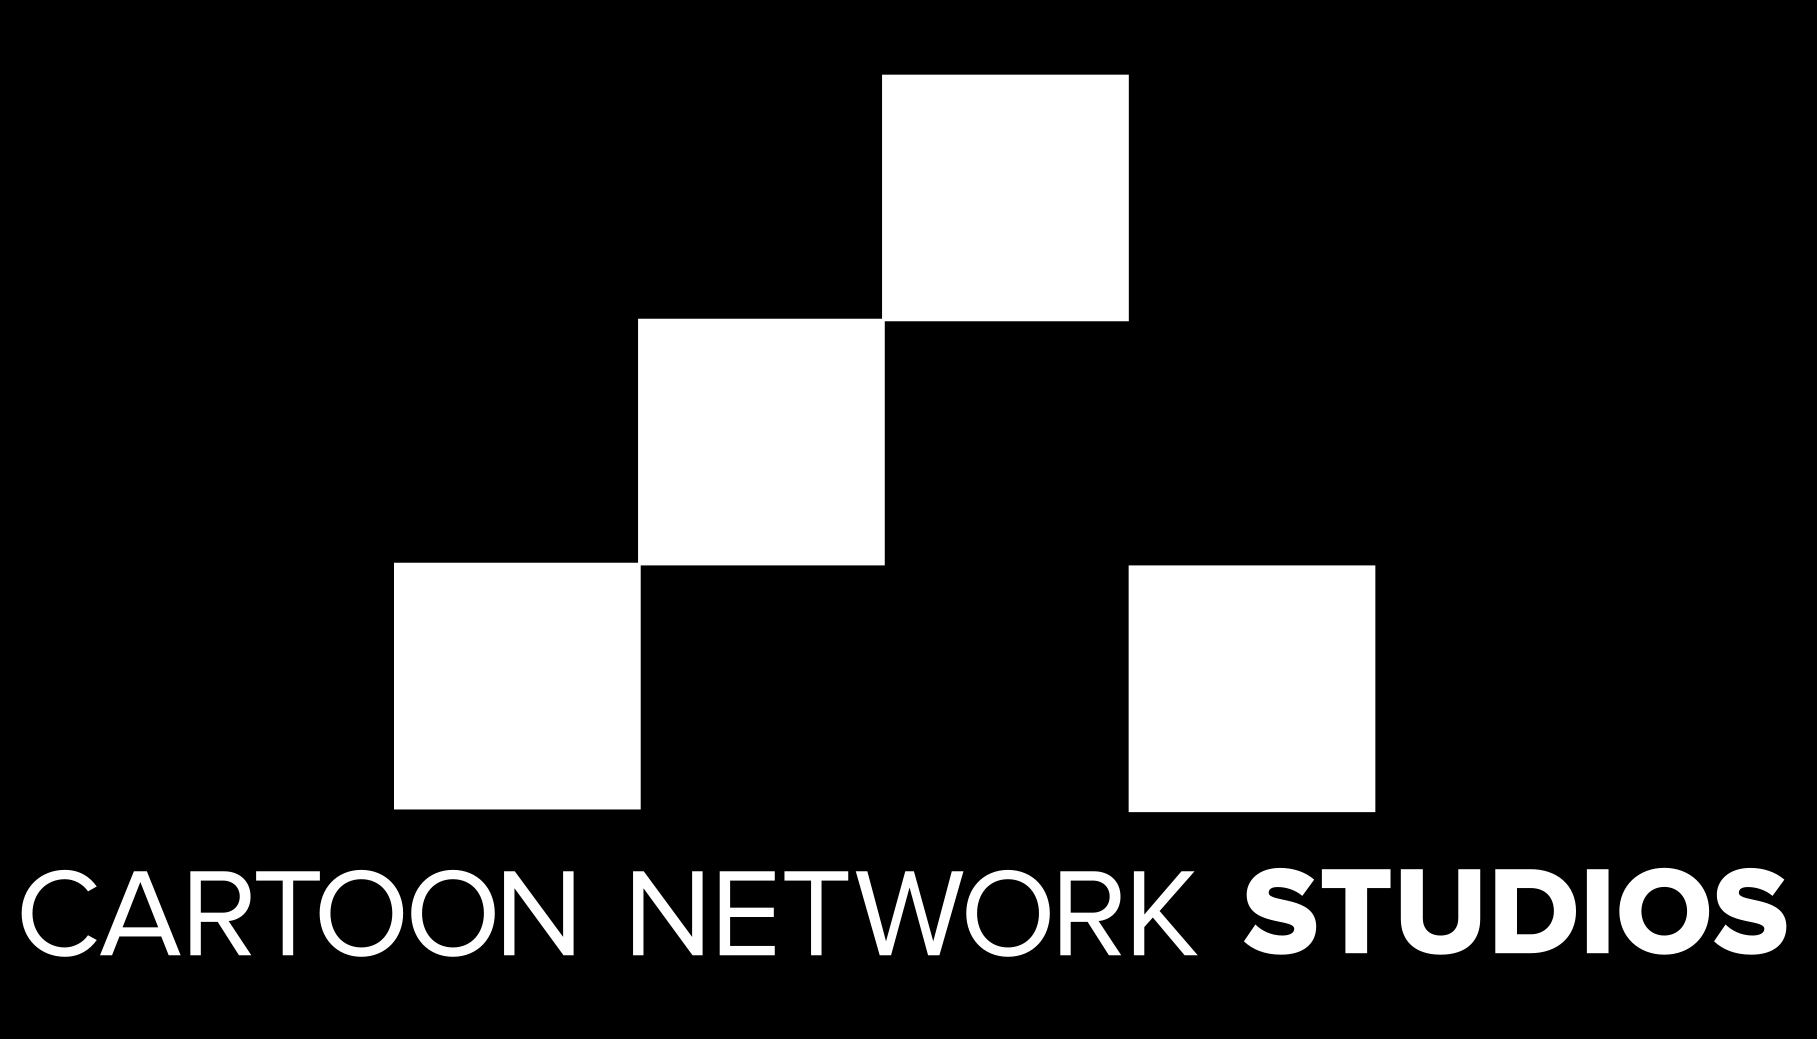 Cartoon Network Studios Template | cartoon.ankaperla.com